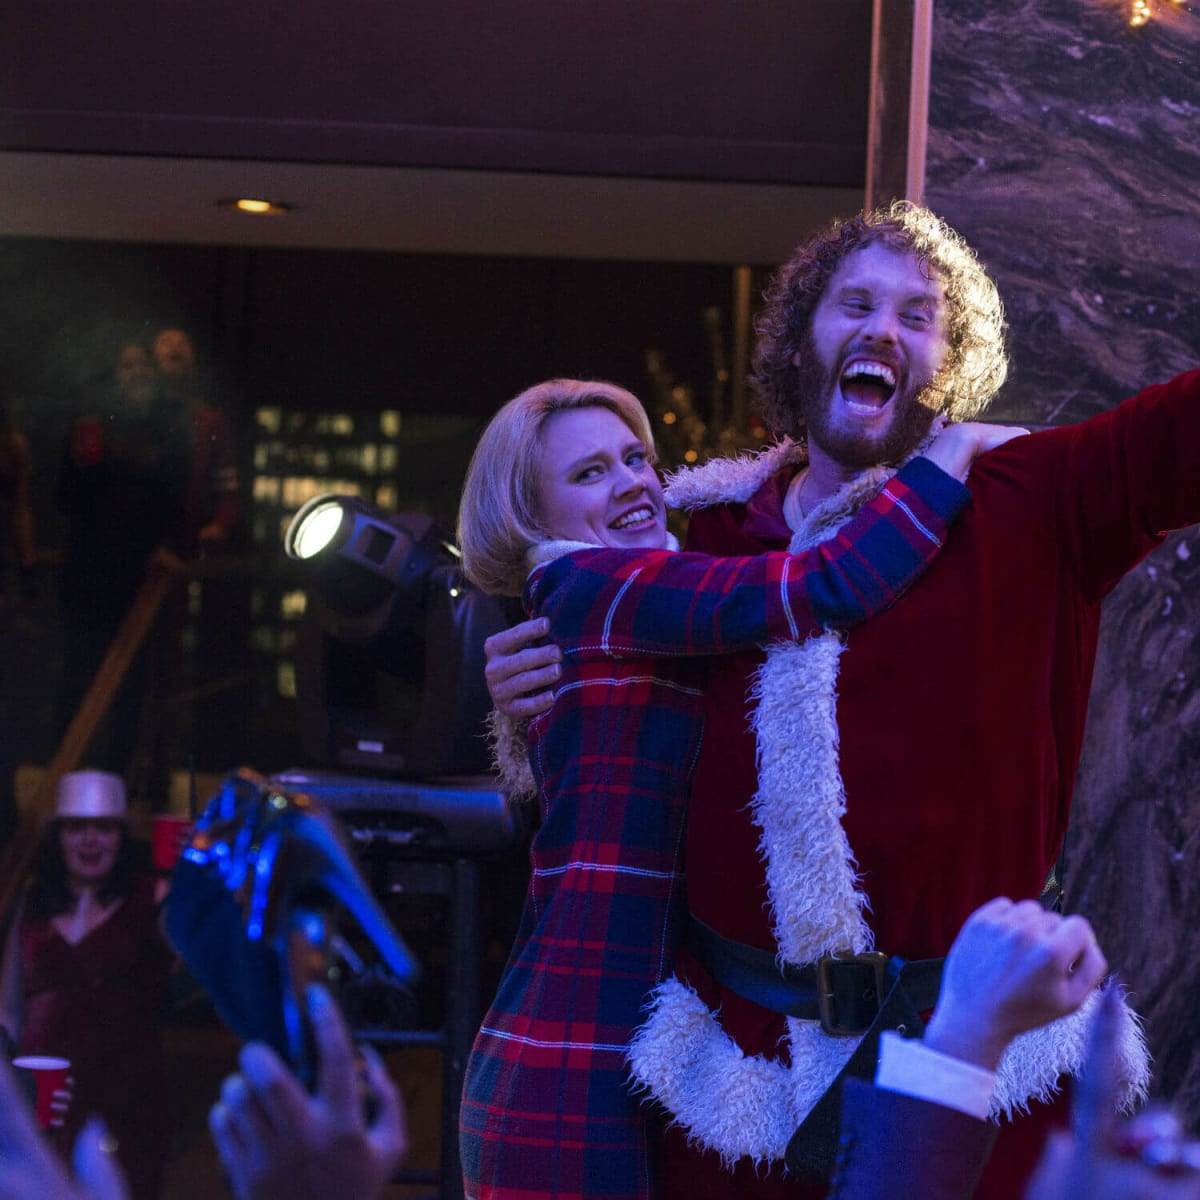 Kate McKinnon and T.J. Miller in Office Christmas Party